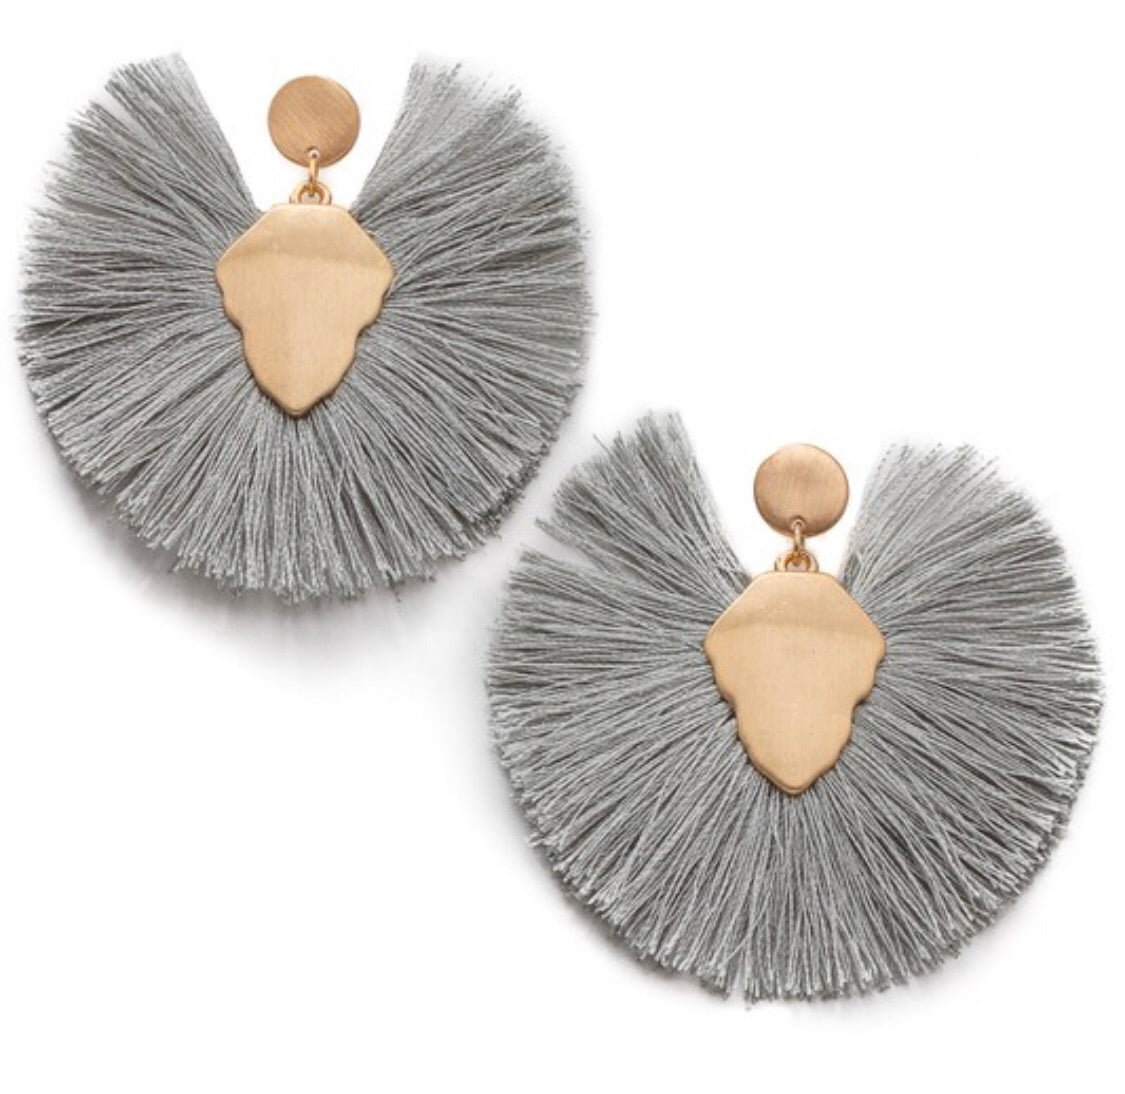 Request More Earrings in Gray